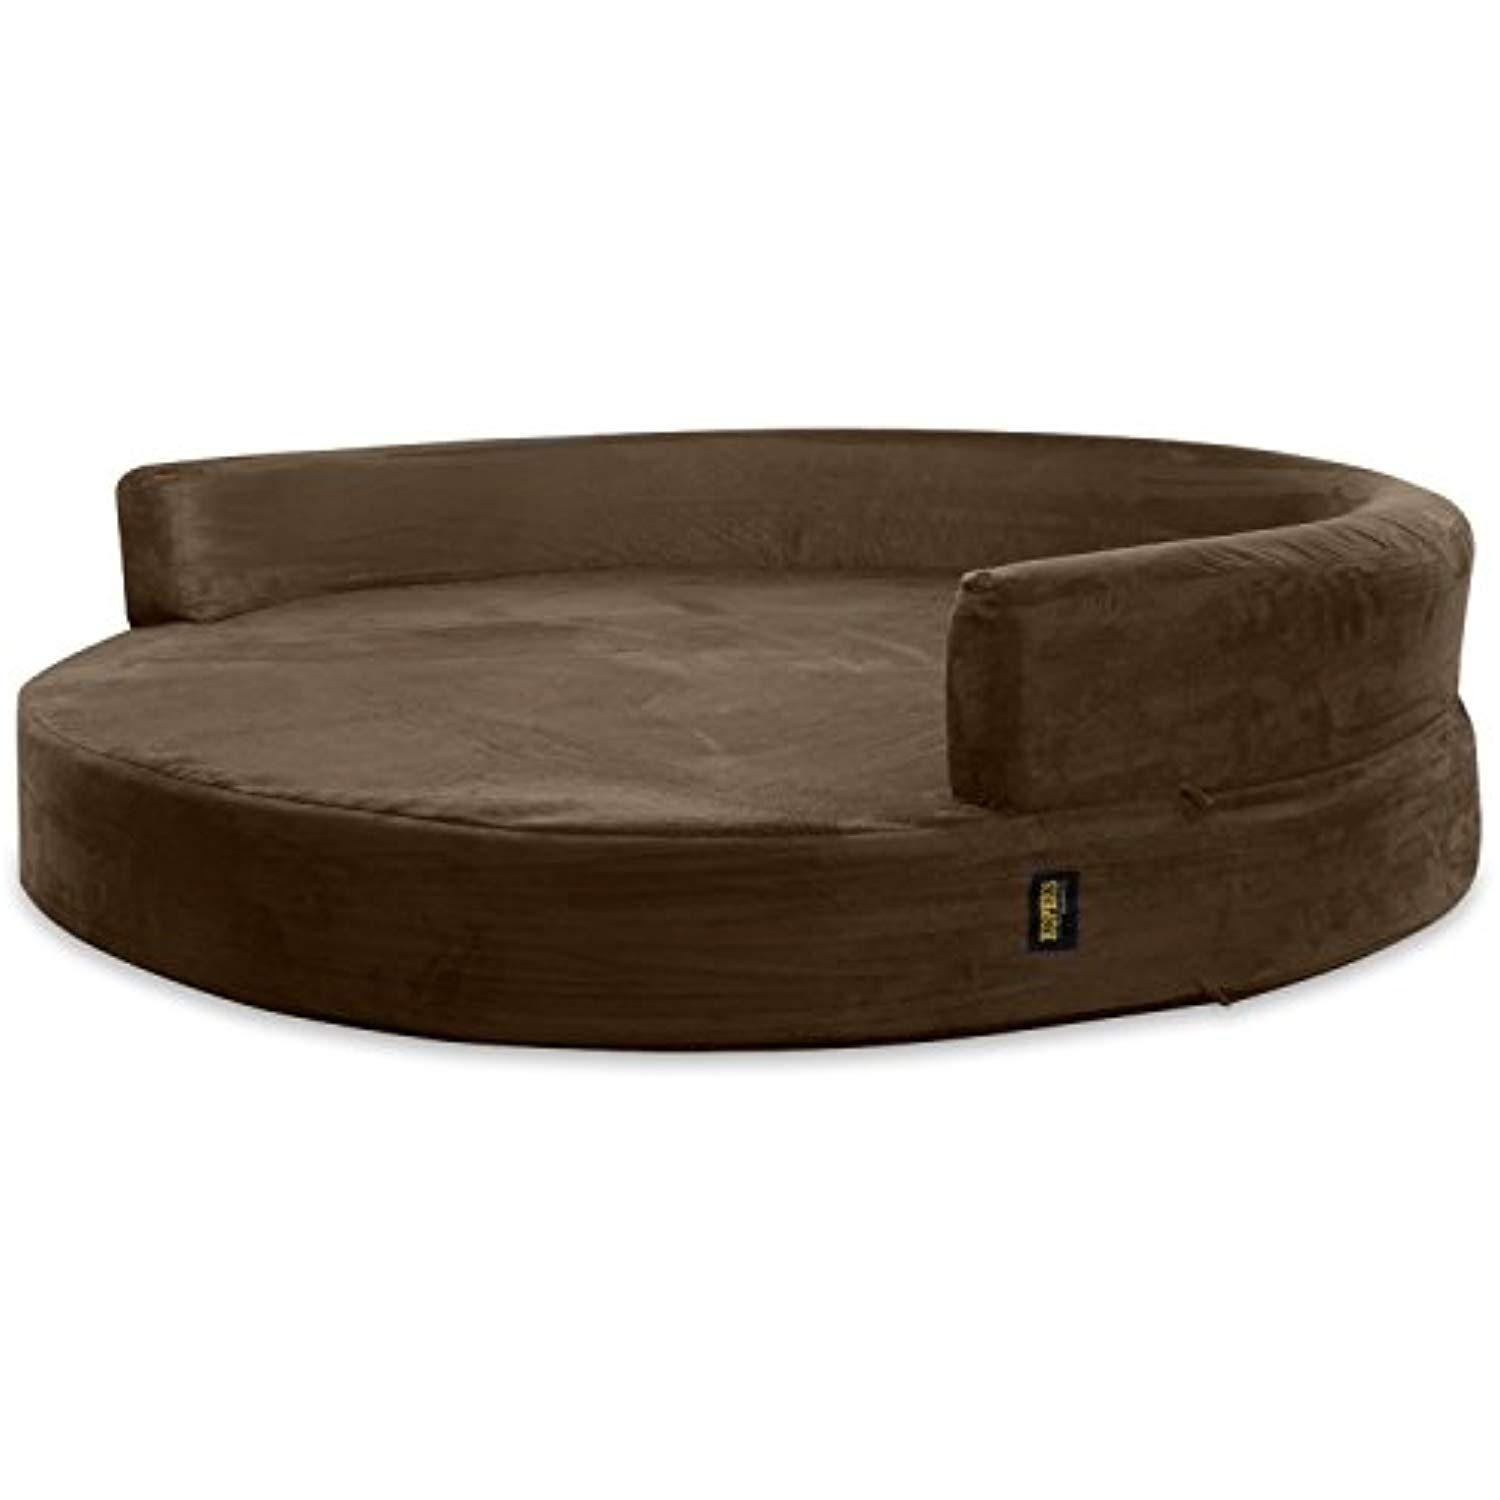 Kopeks Replacement Cover For Deluxe Orthopedic Memory Foam Round Sofa Lounge Dog Bed Large Brown Click Image Fo Dog Lounge Bed Dog Bed Large Round Sofa